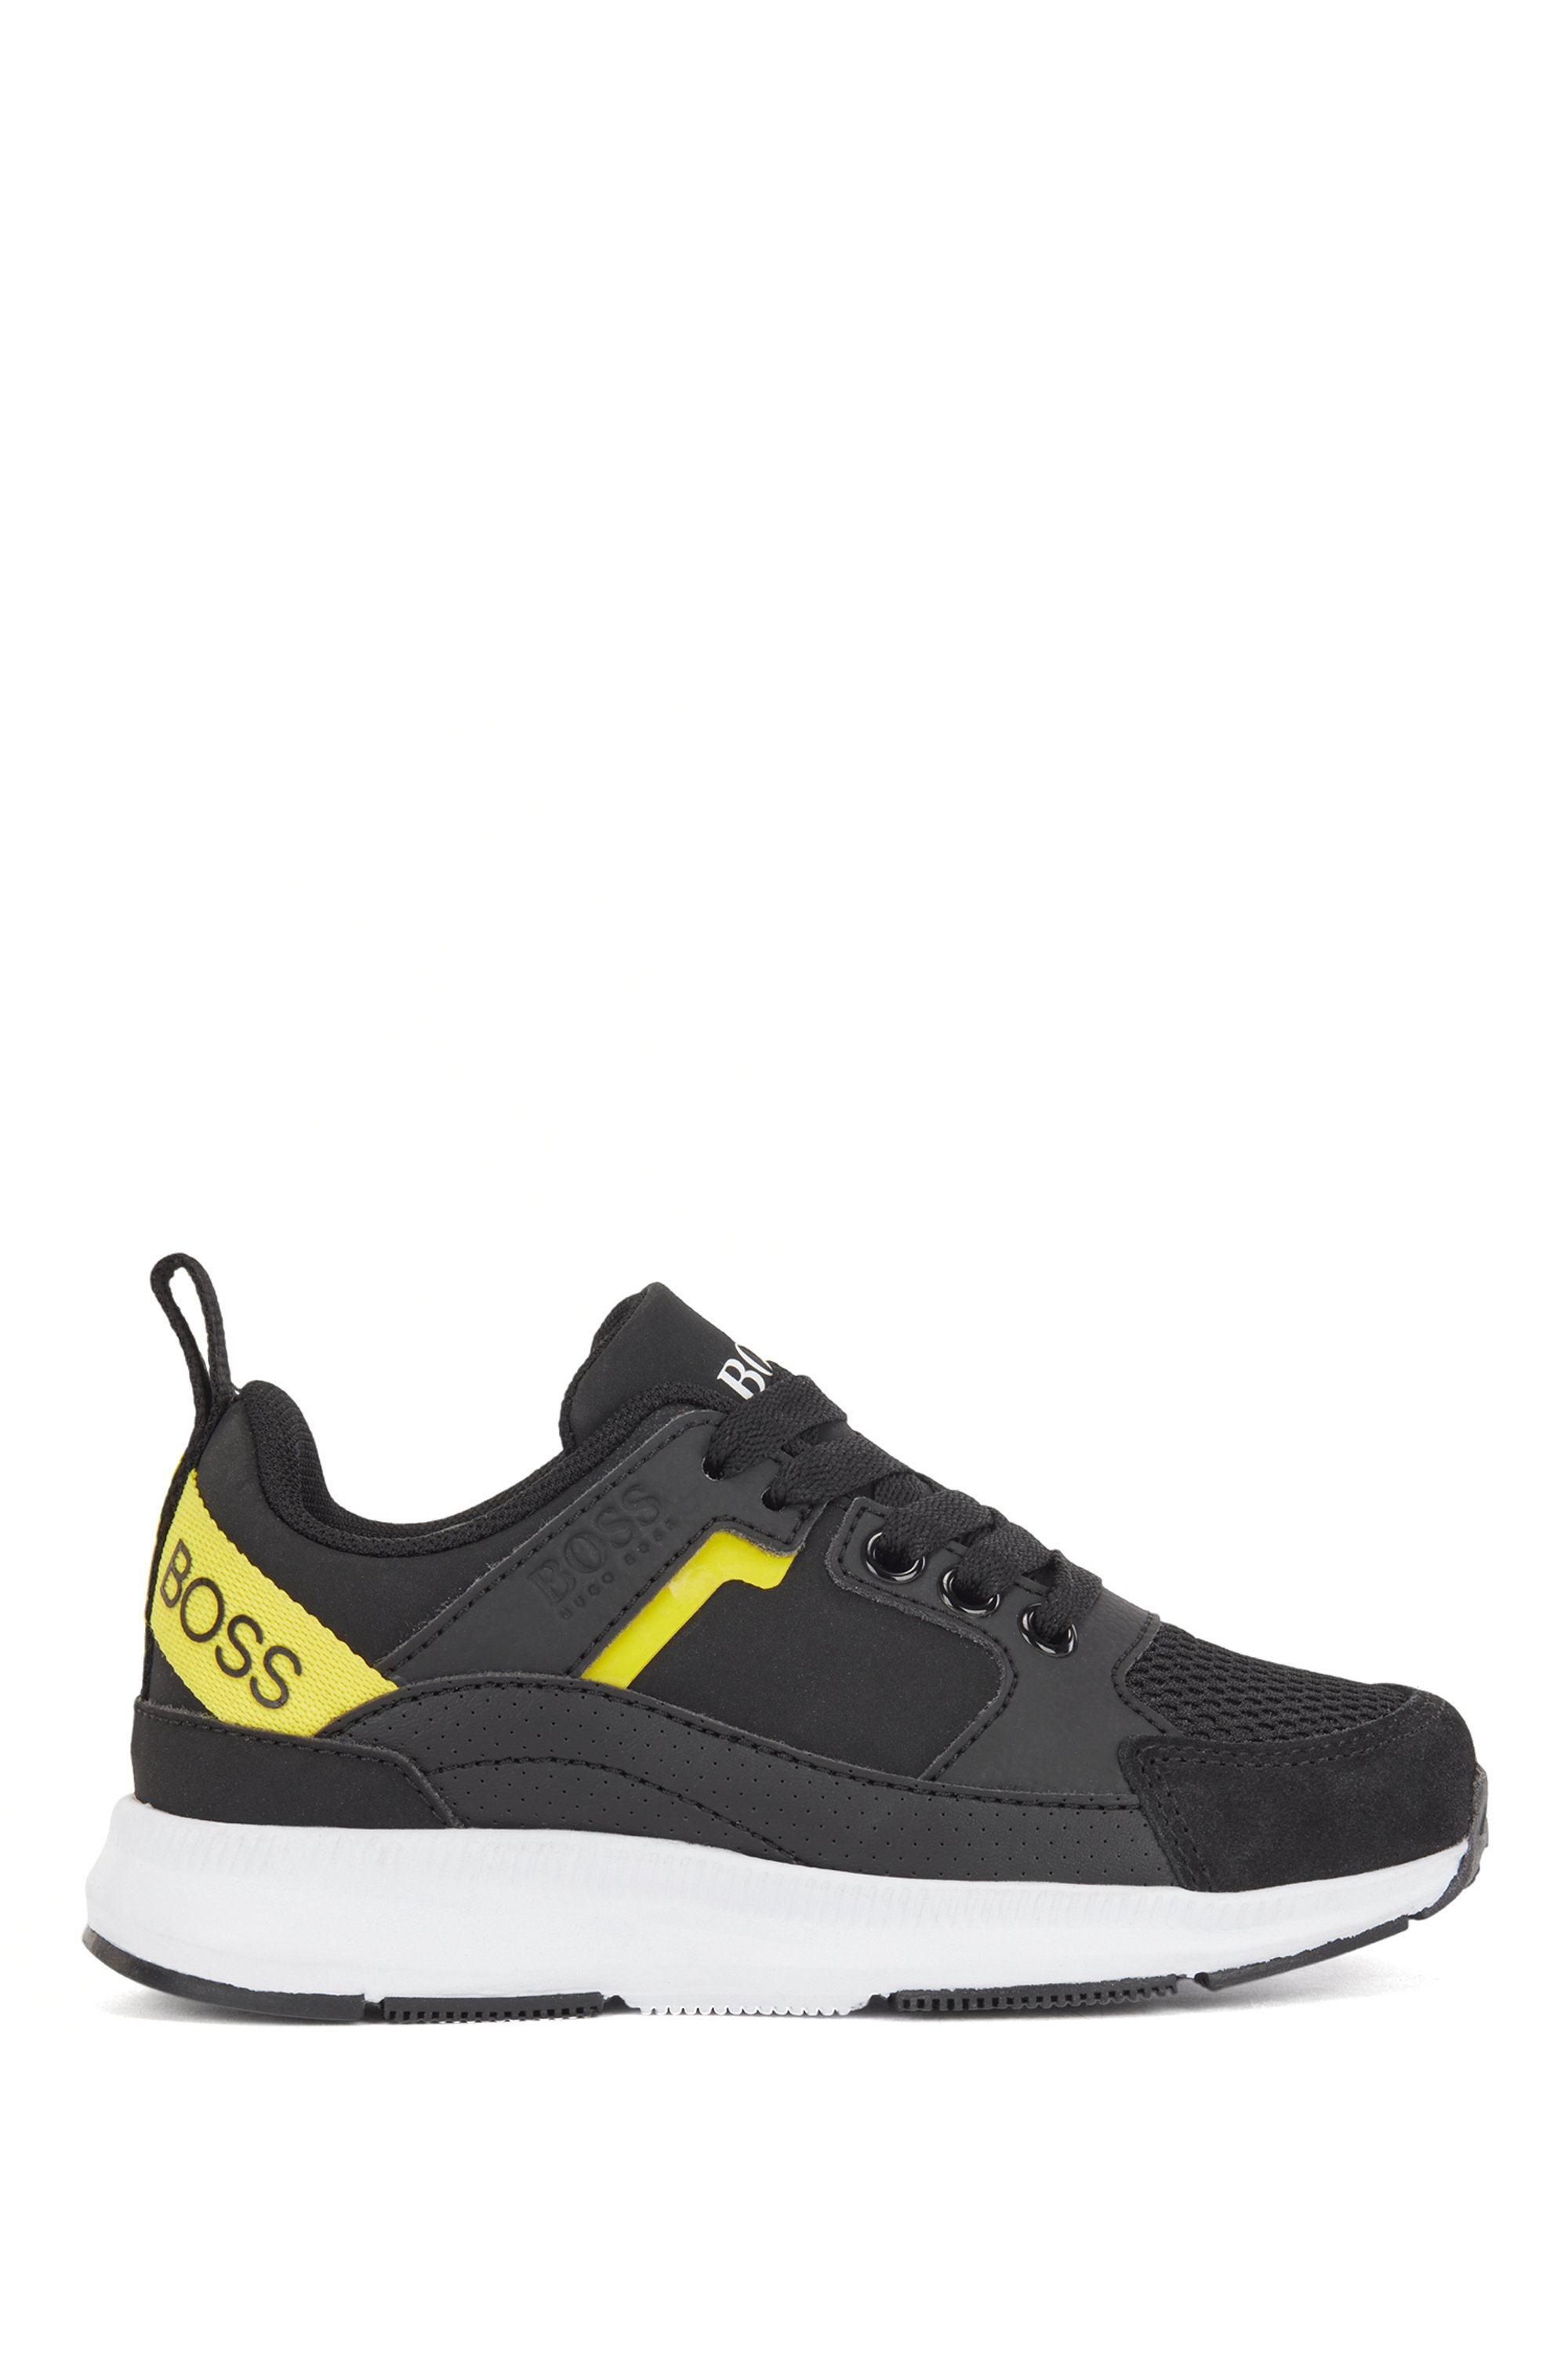 Kids' trainers in mixed materials with logo details